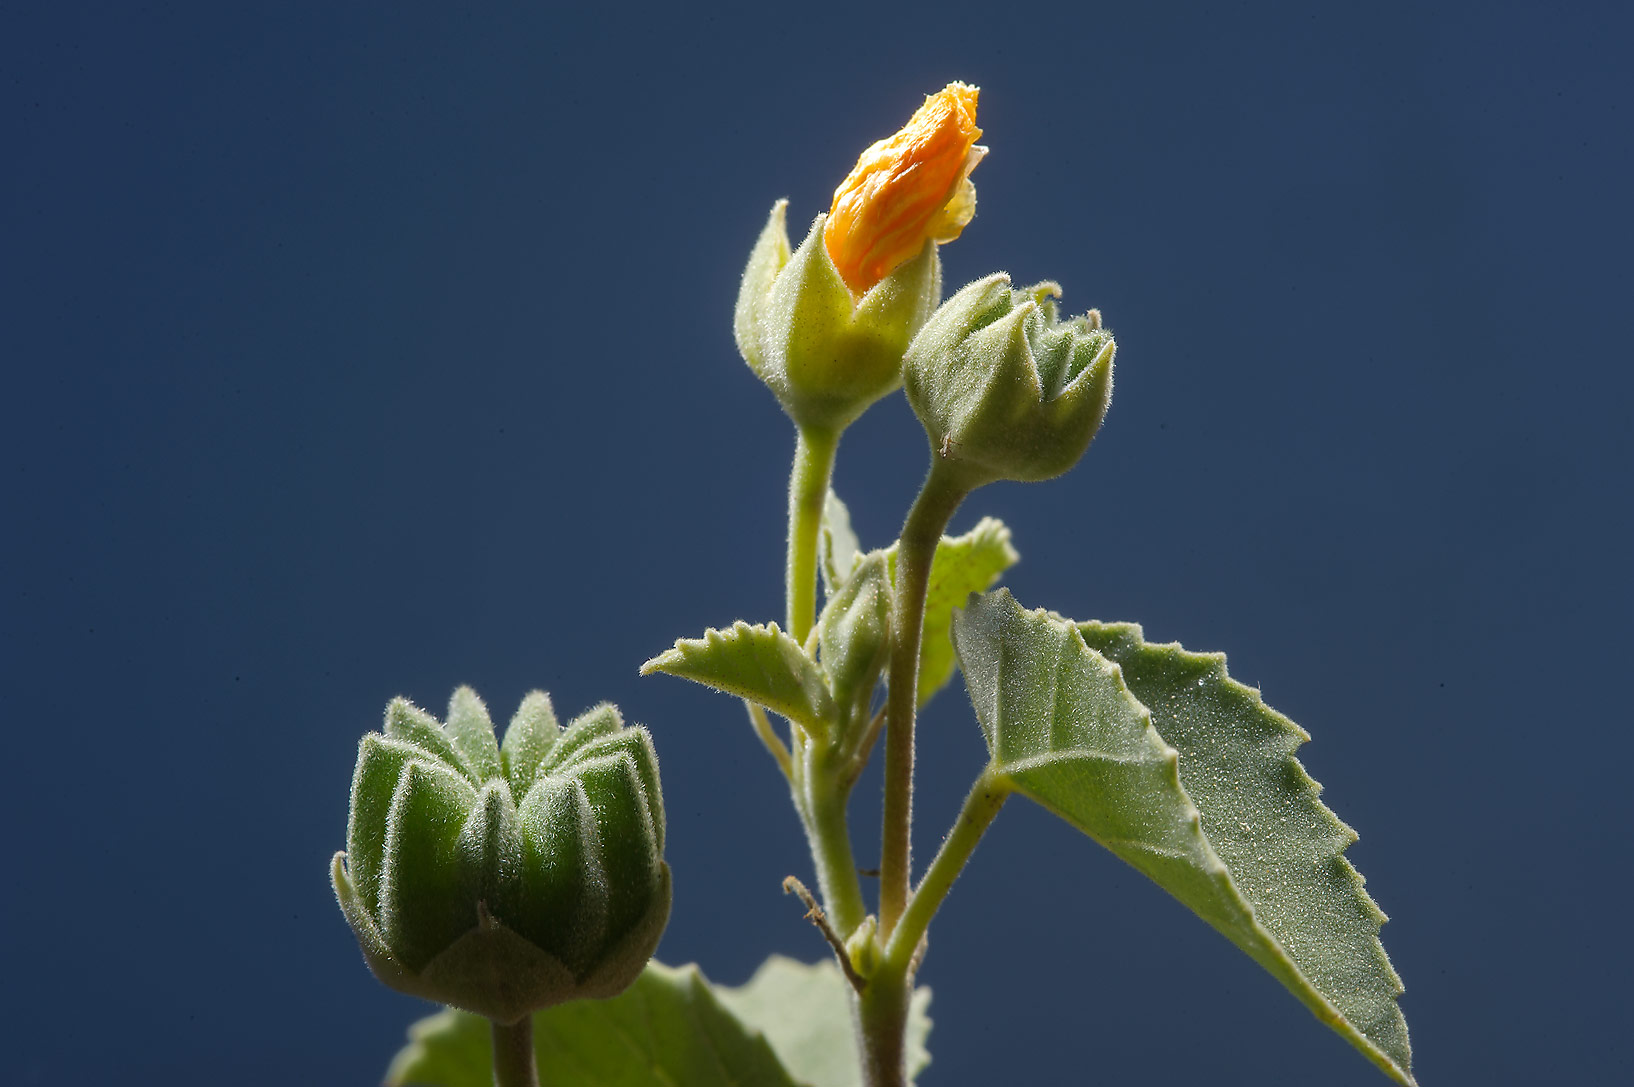 Shoot of Texas Indian-mallow (Abutilon fruticosum...farms area, in north-western Qatar